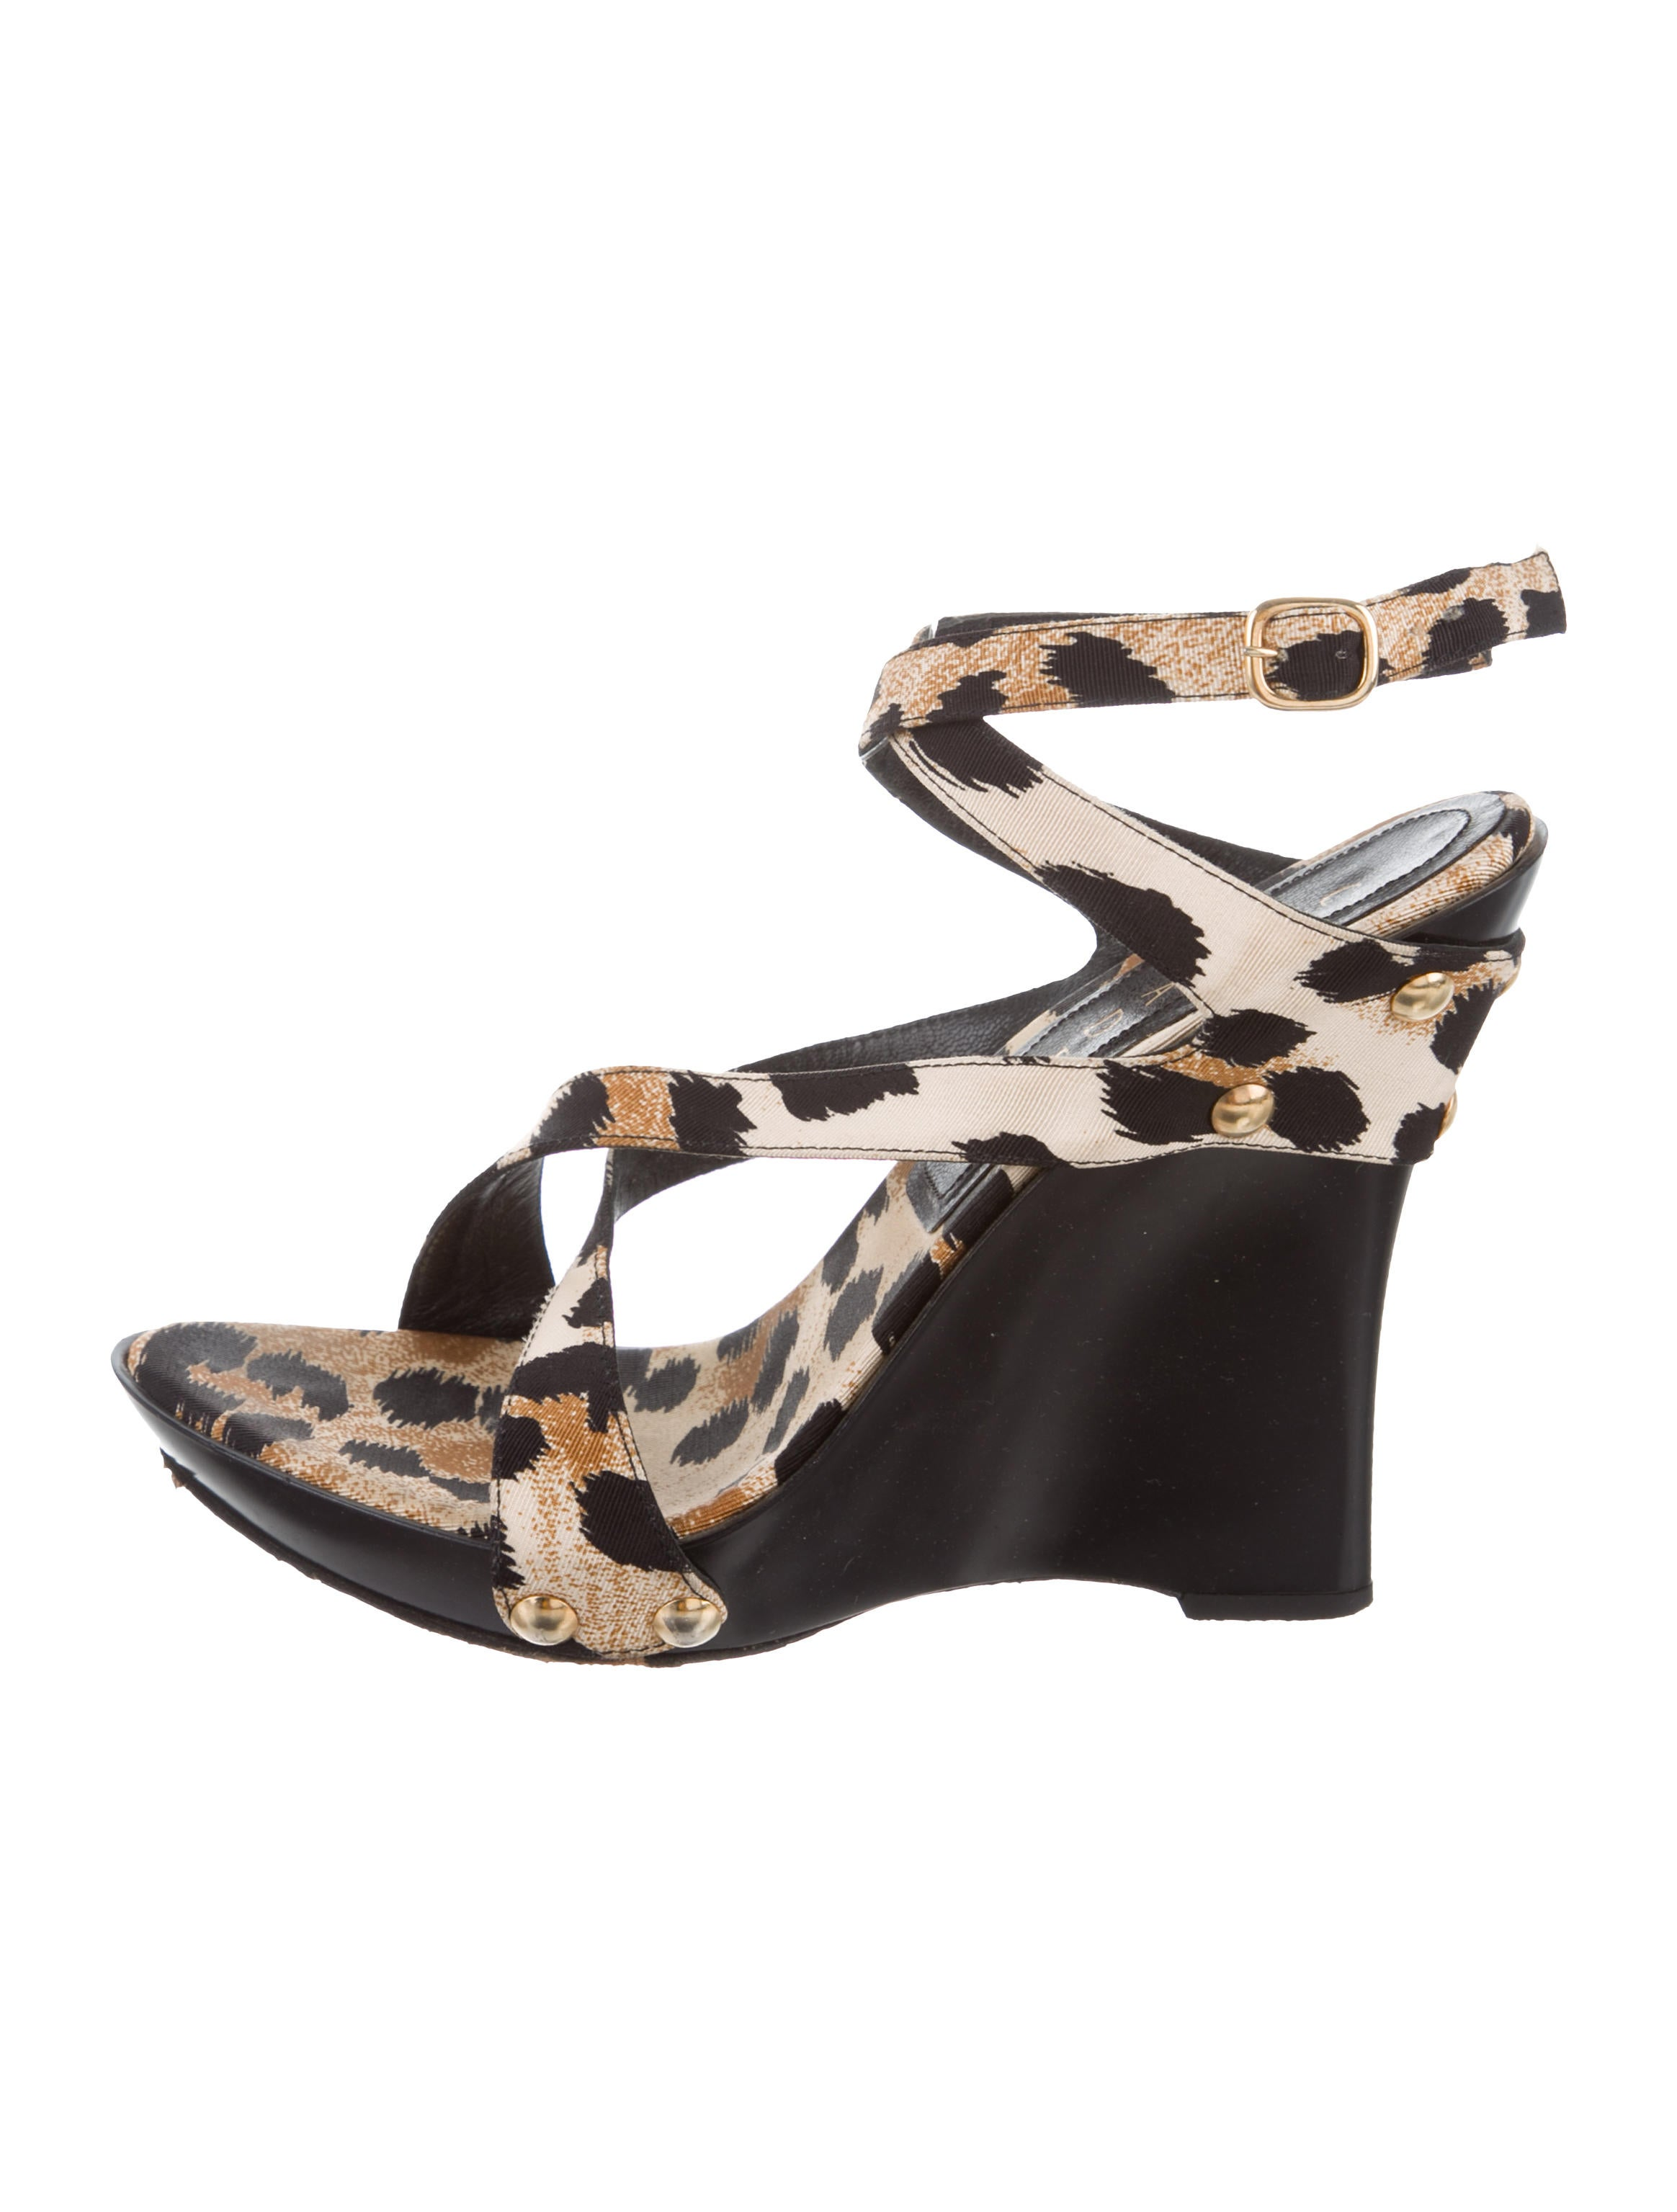 Casadei Leopard Crossover Wedges official sale online outlet footlocker finishline with paypal for sale clearance cheap price sale limited edition ZkBMC